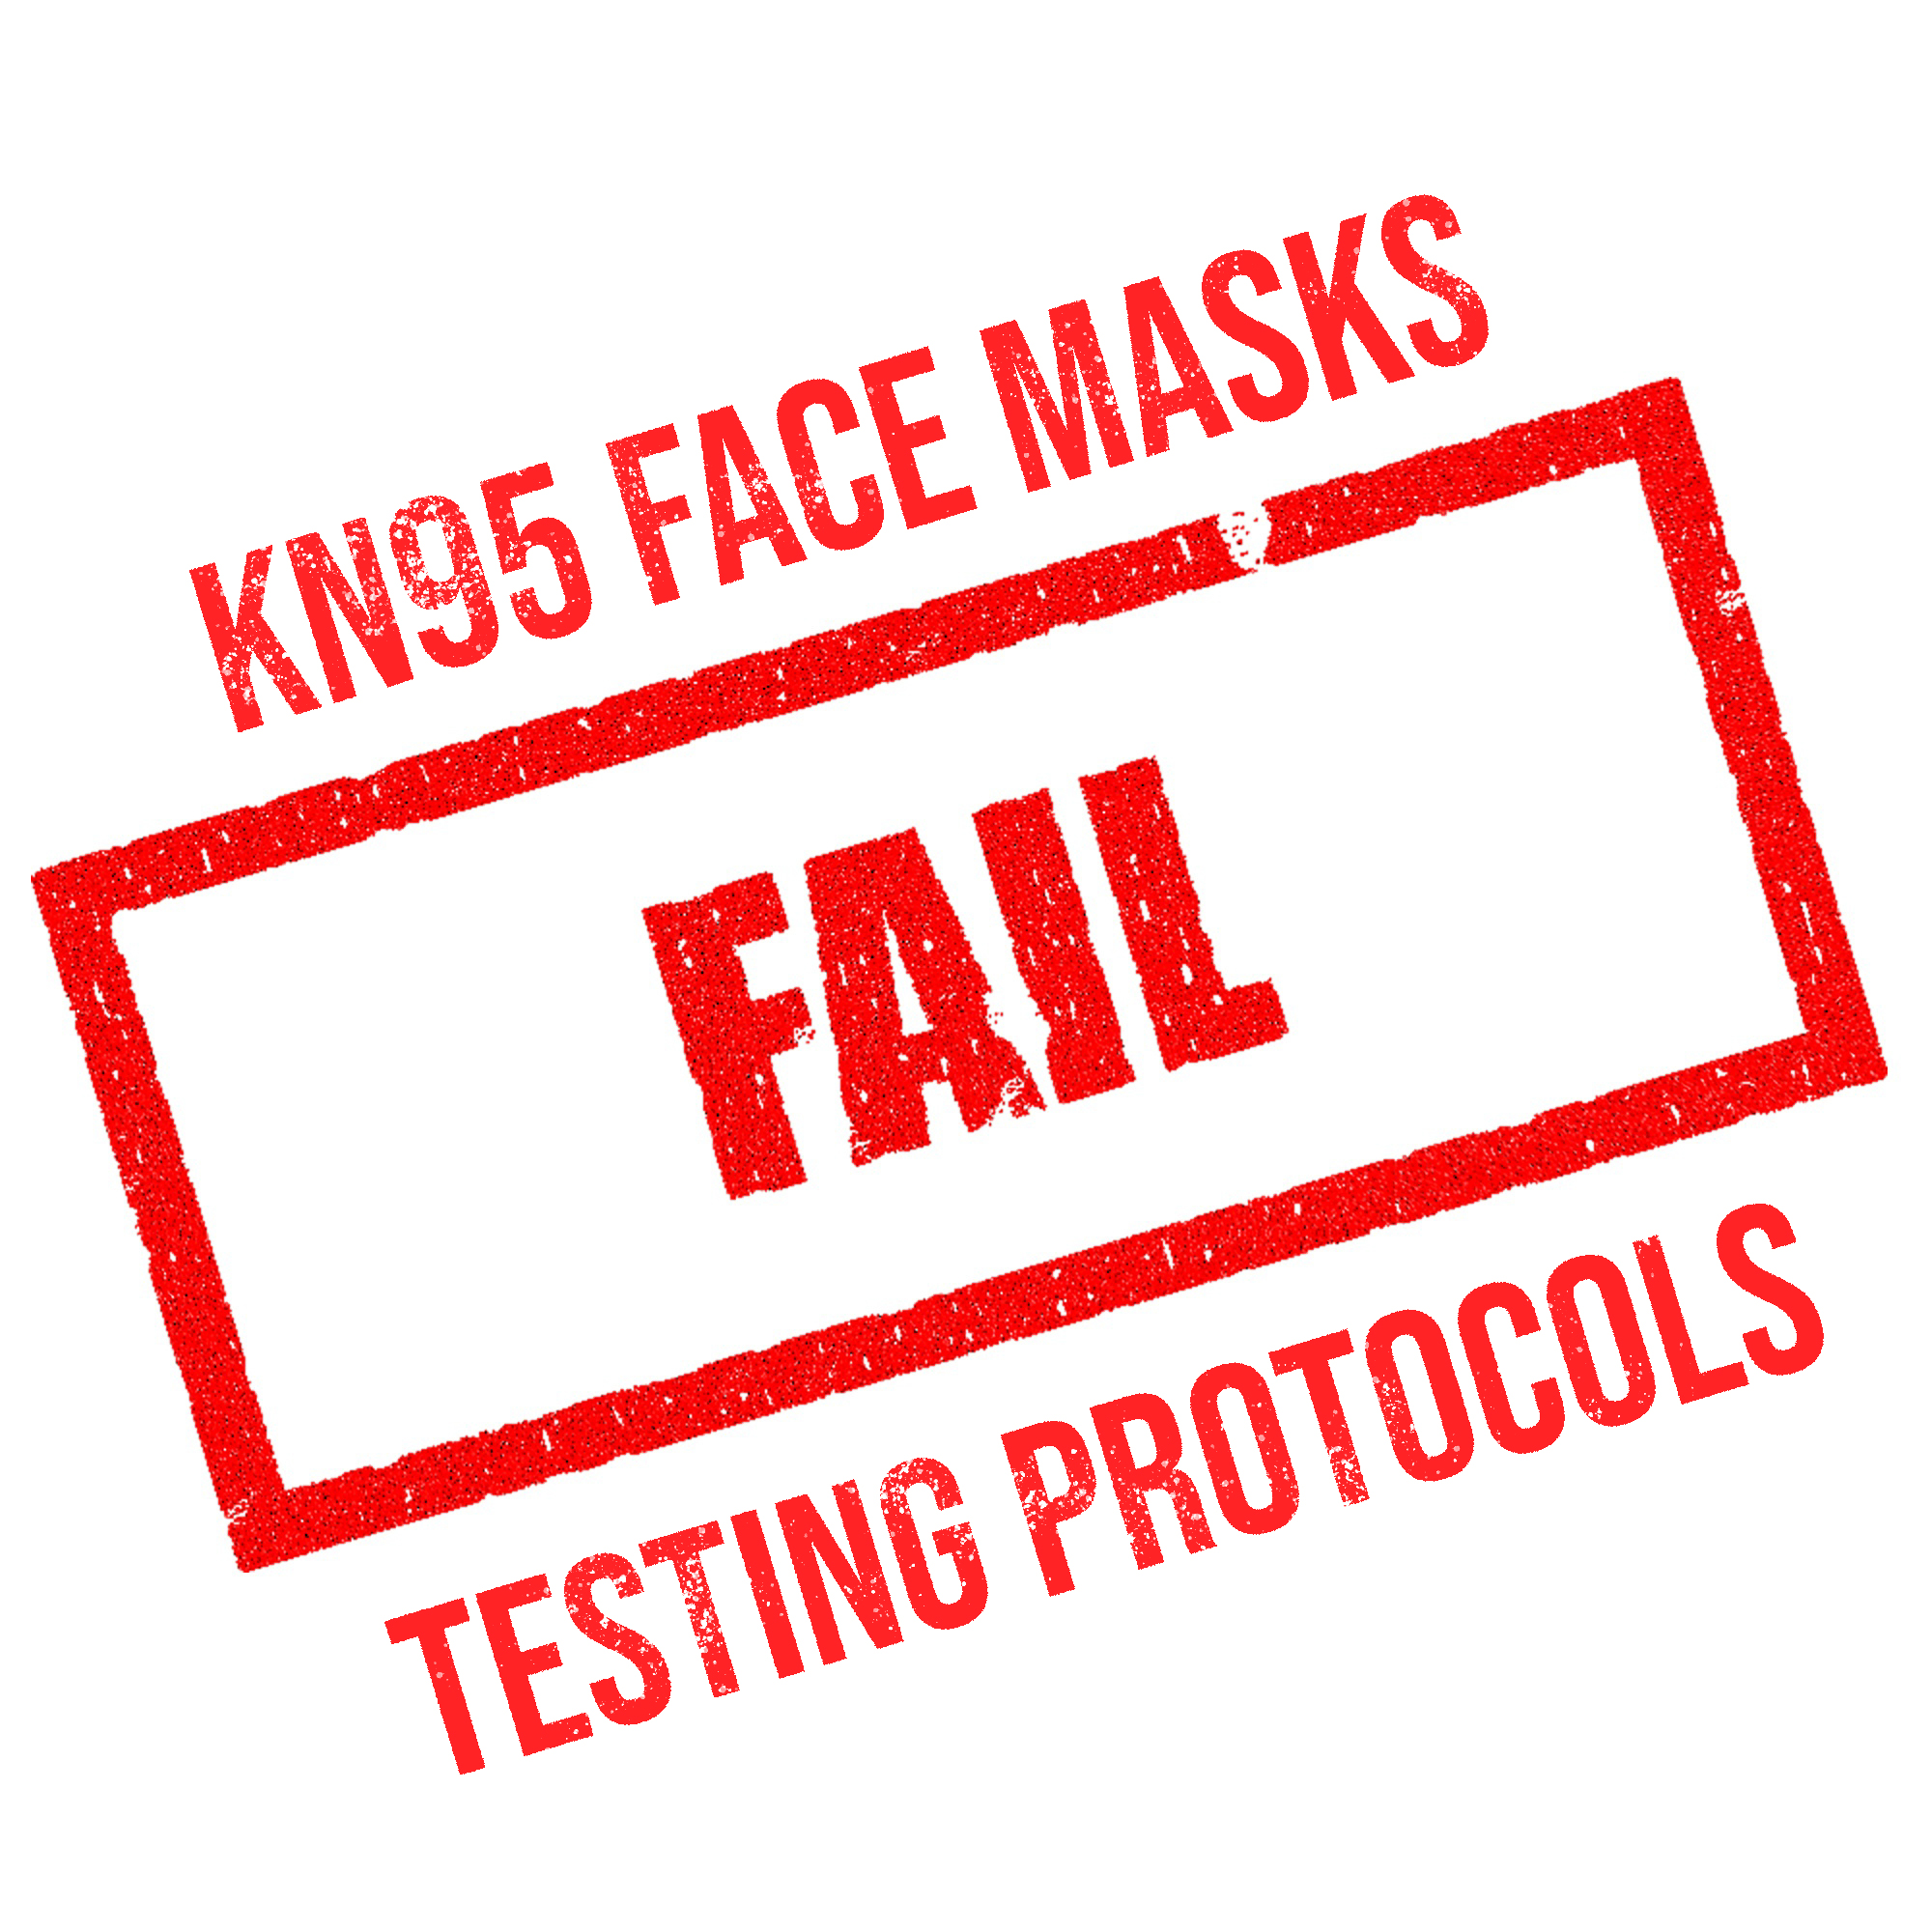 Distributed KN95 Respiratory Face Masks Fail Testing Protocols in South Africa